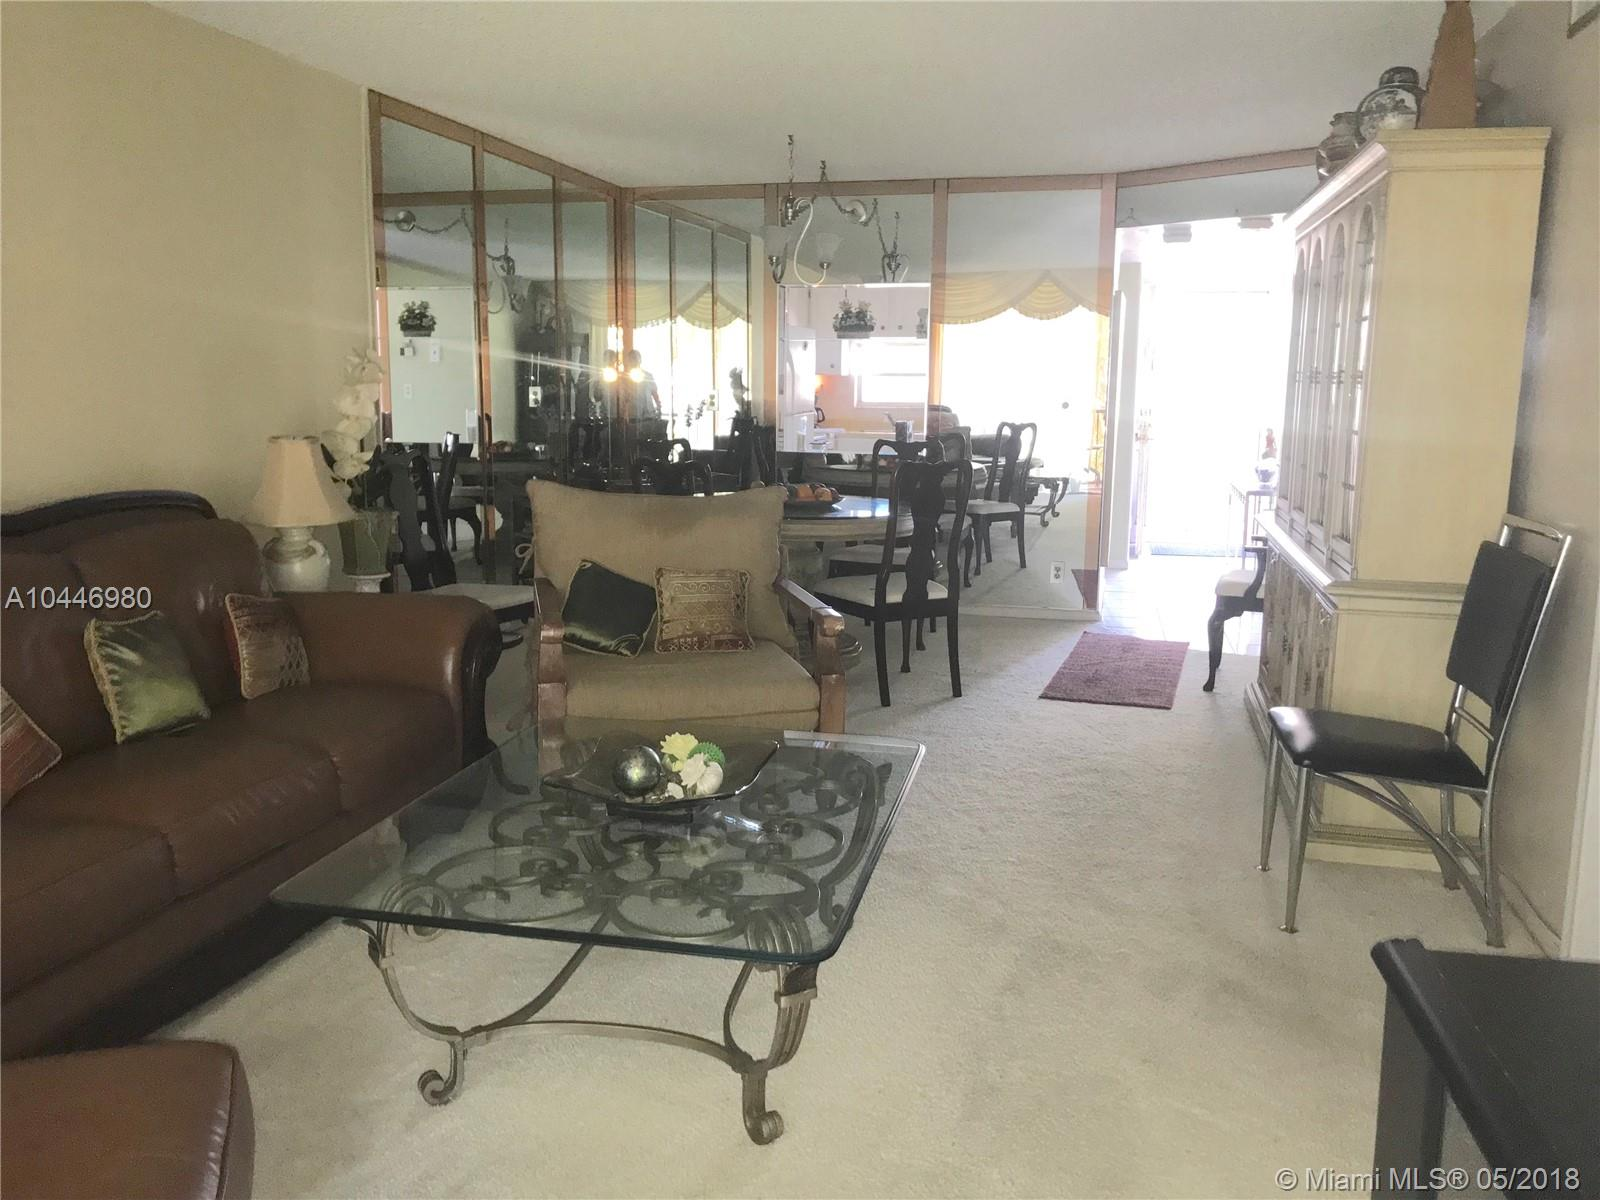 Charmant 8962 S Hollybrook Blvd, #202, Pembroke Pines, FL 33025